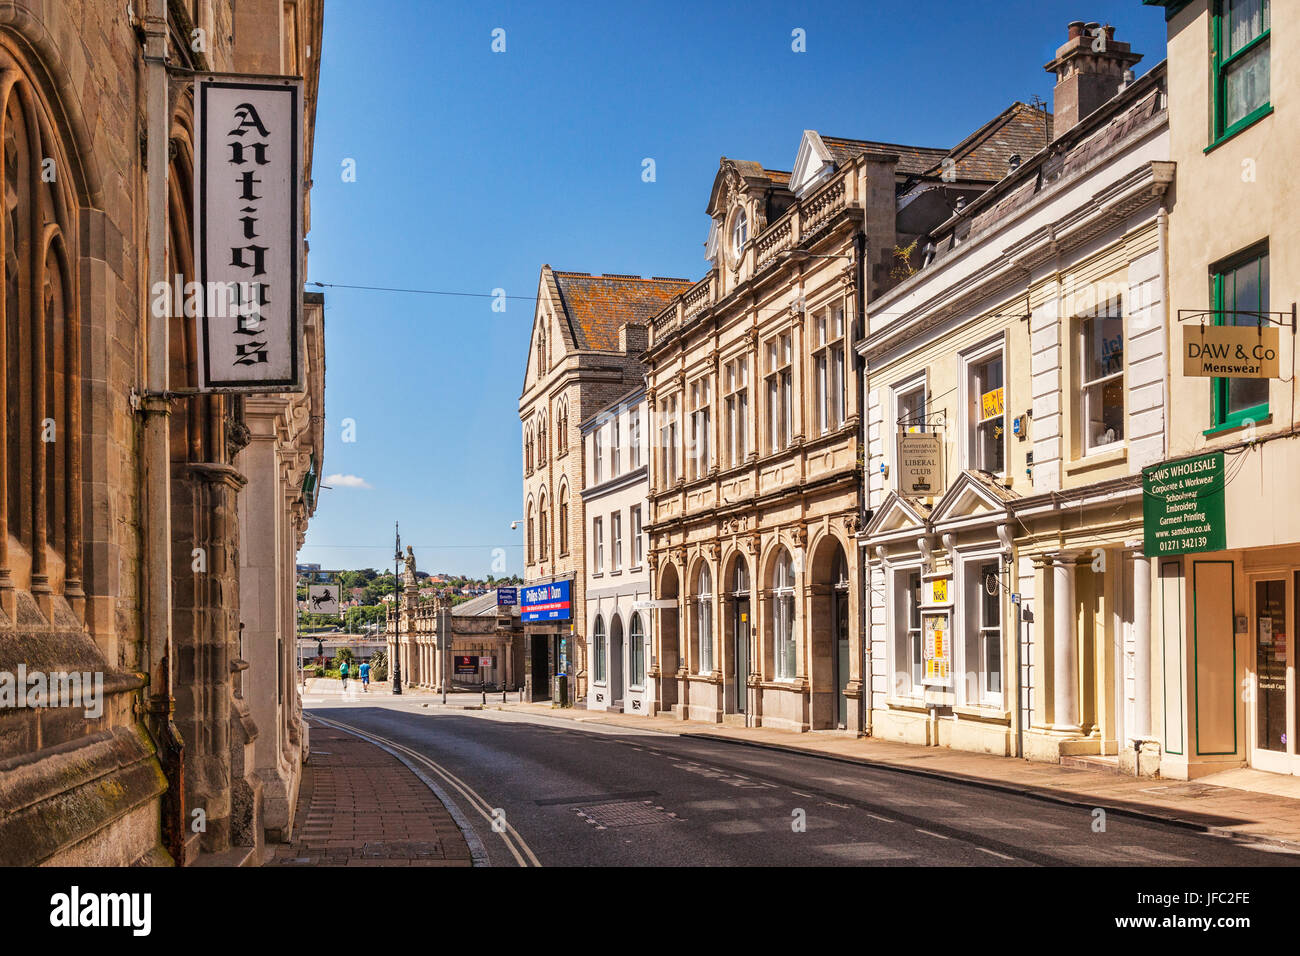 18 June 2017: Barnstaple, Devon, England, UK - Fine old buildings in Cross Street. Queen Anne's Walk has the - Stock Image